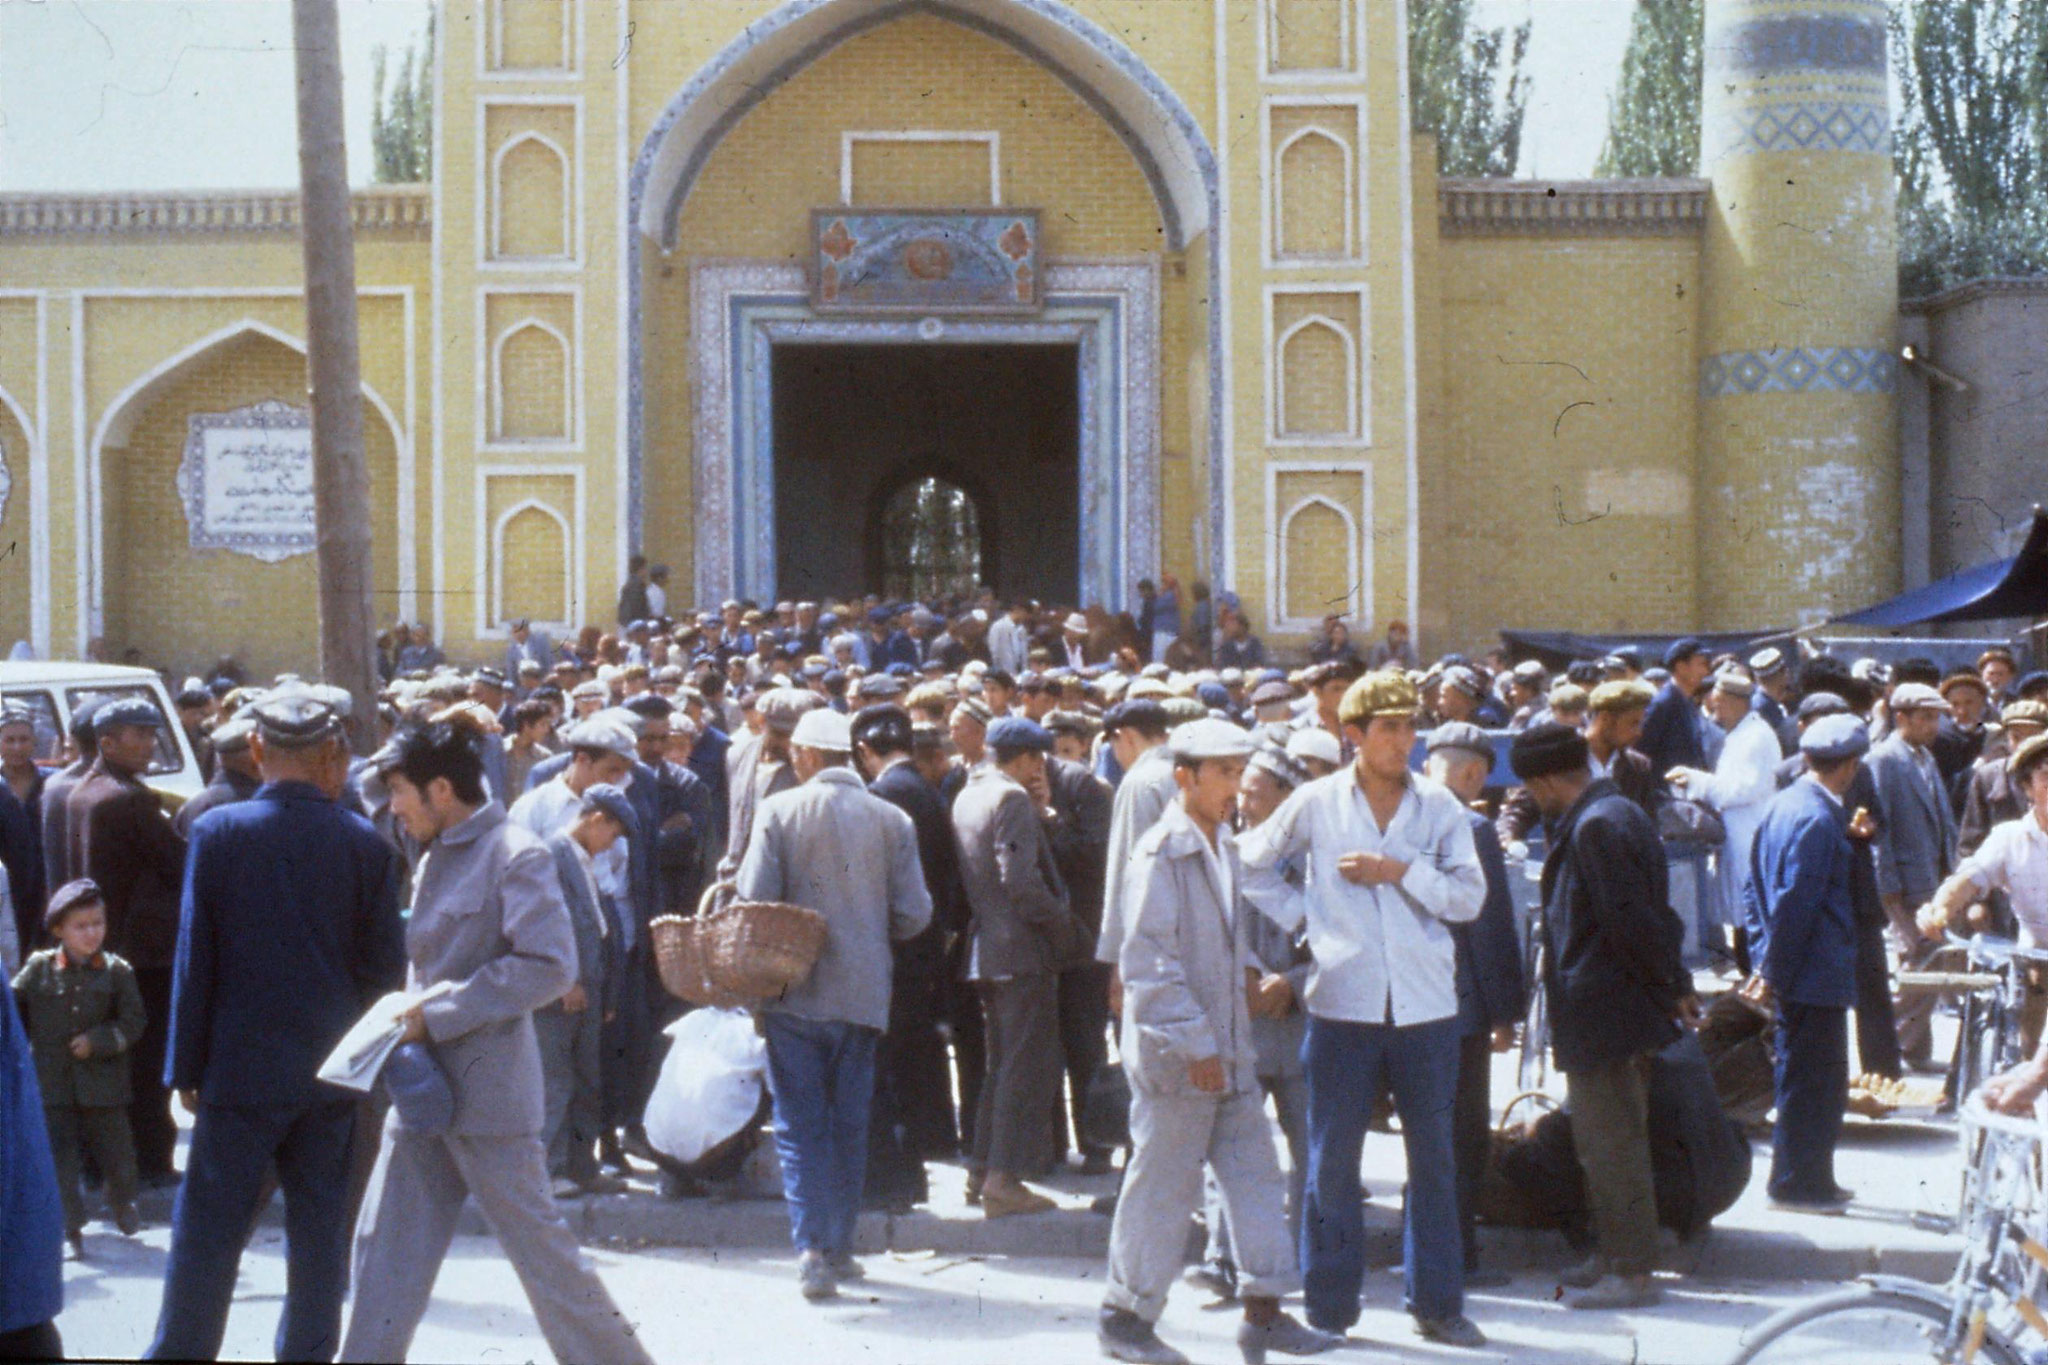 8/9/1989:22: Kasgar, women waiting at mosque gate